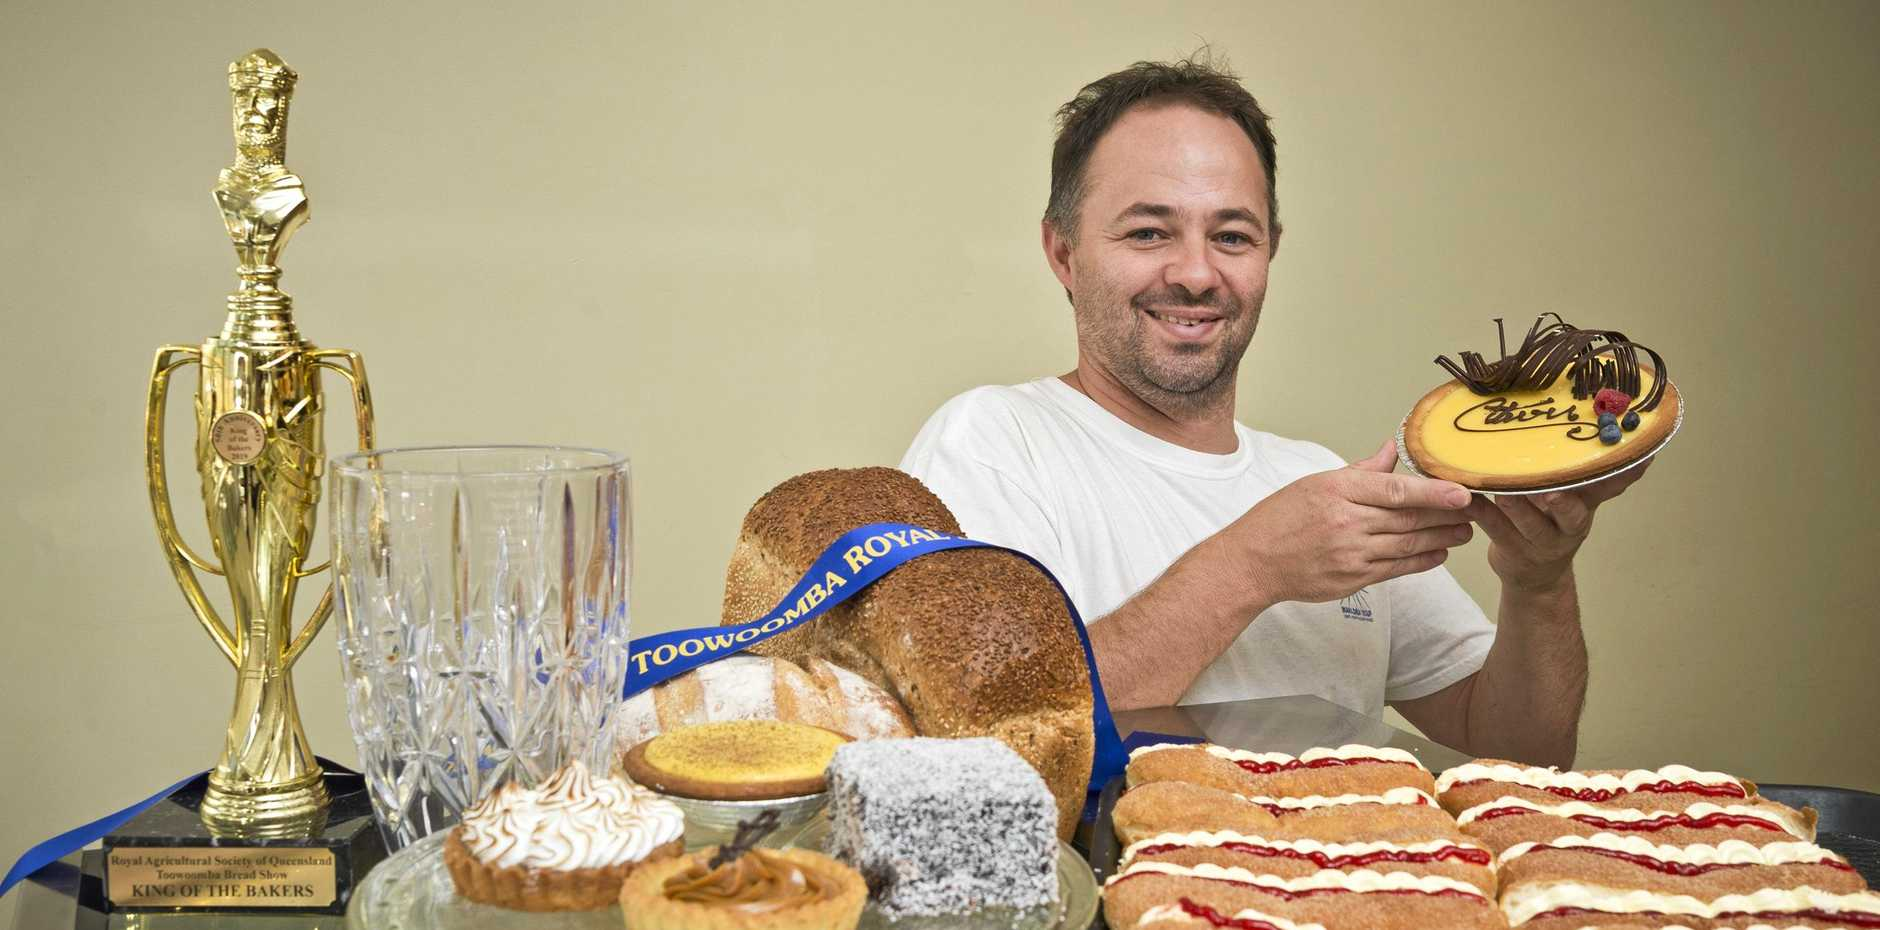 ROYAL EFFORT: Antony's bakery and patisserie owner and baker Antony Blackey is the RASQ Toowoomba Bread Show King of the Bakers .